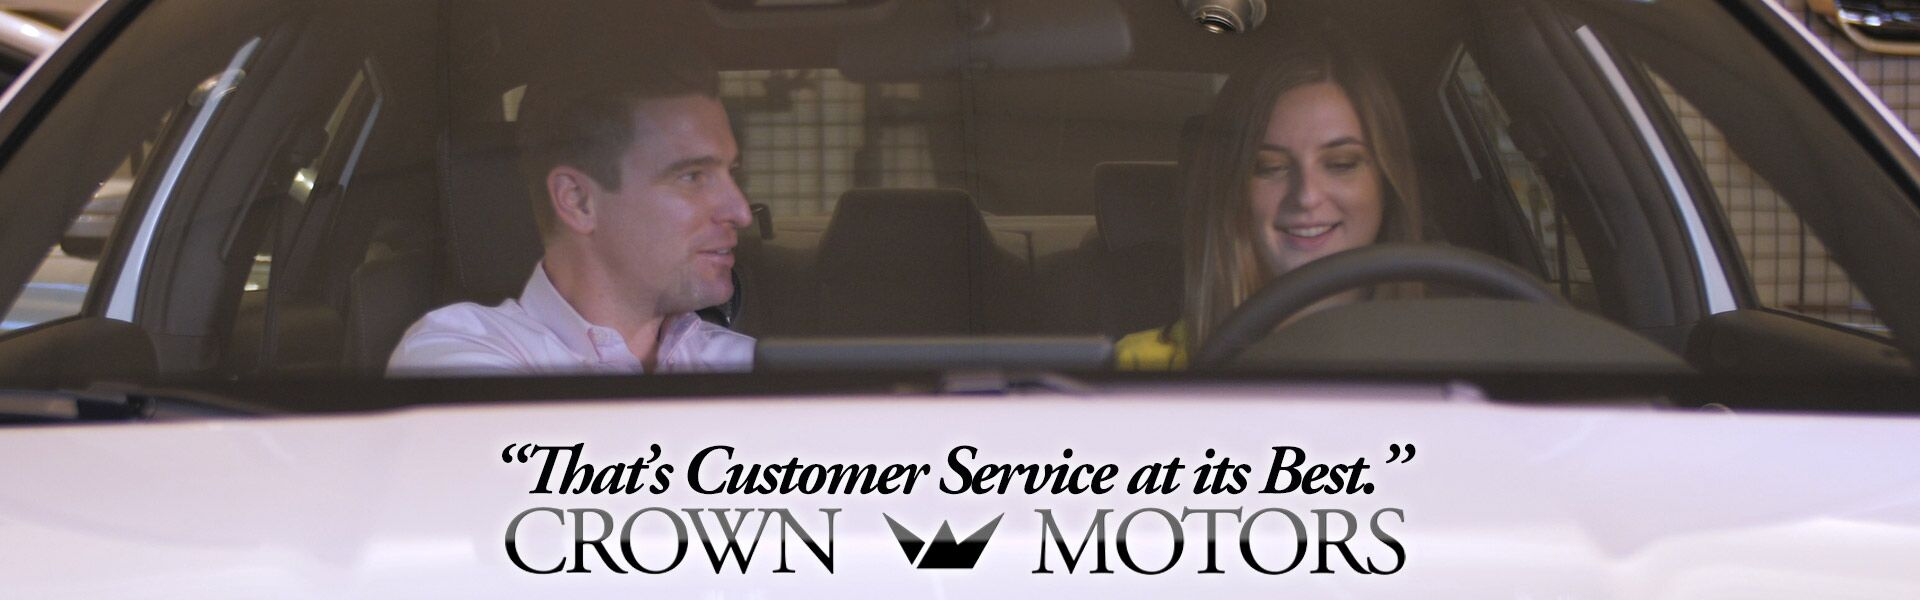 Customer Service at its Best at Crown Mazda